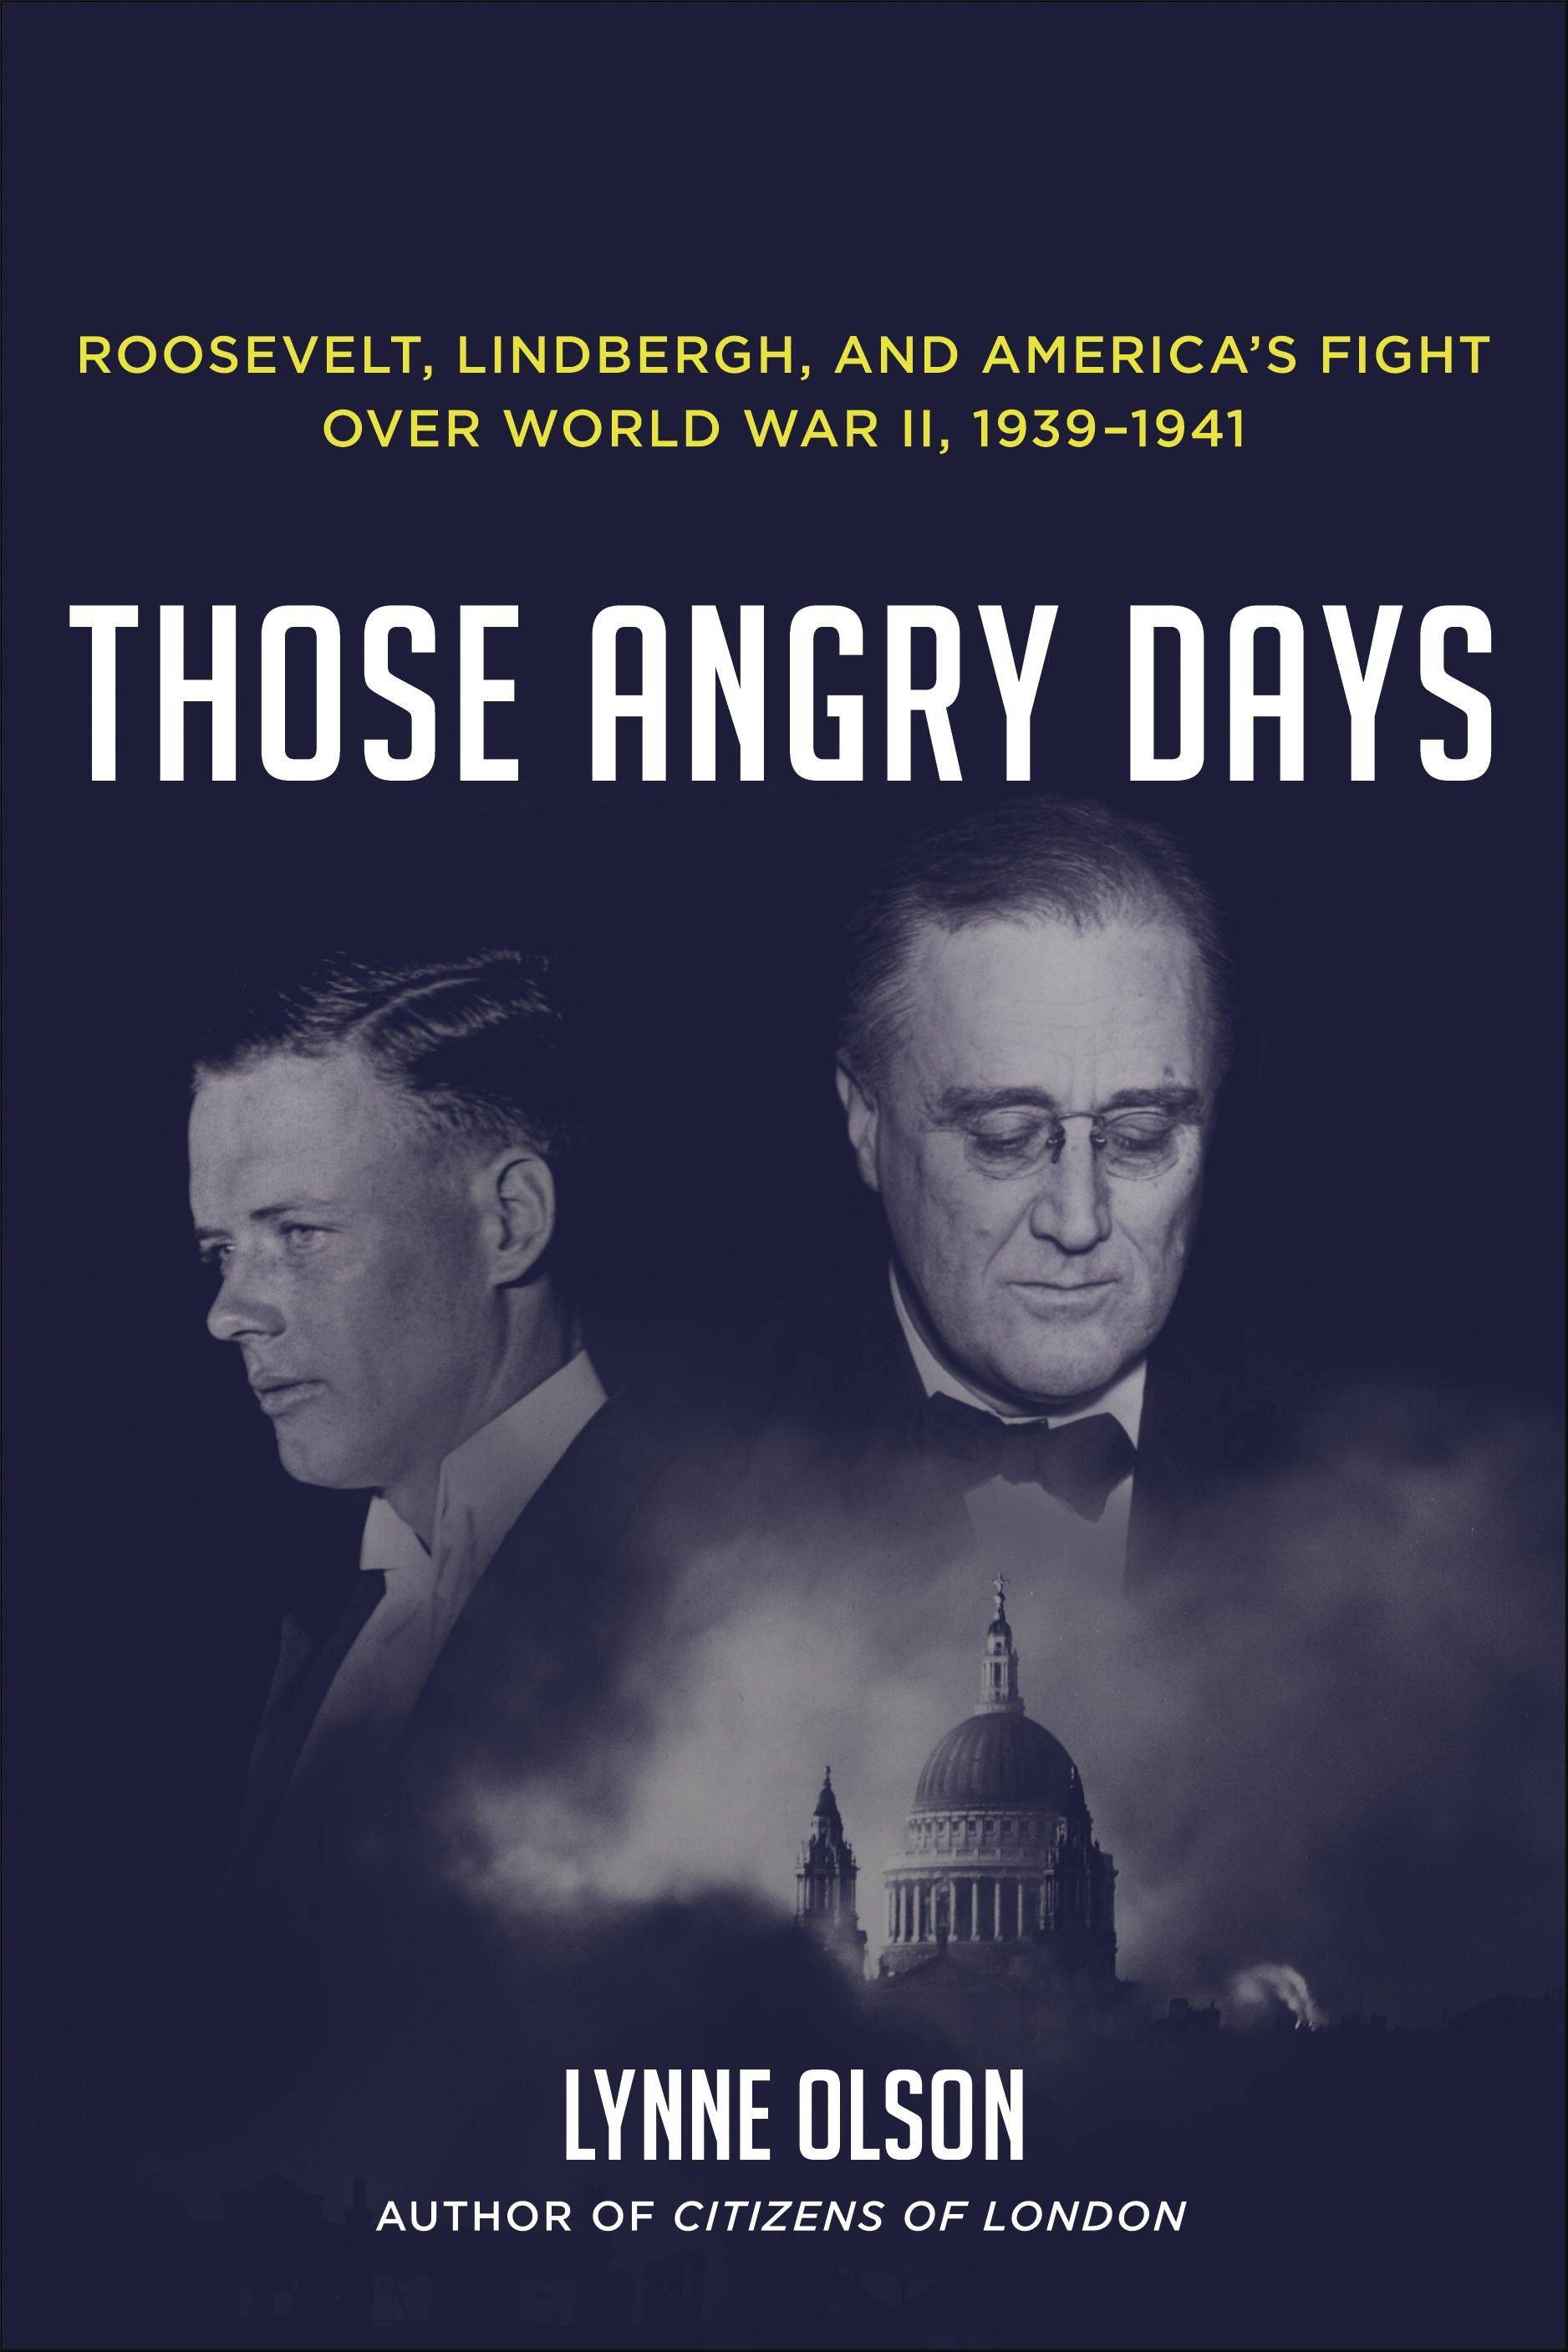 �Those Angry Days: Roosevelt, Lindbergh, and America�s Fight Over World War II, 1939-1941� by Lynne Olson